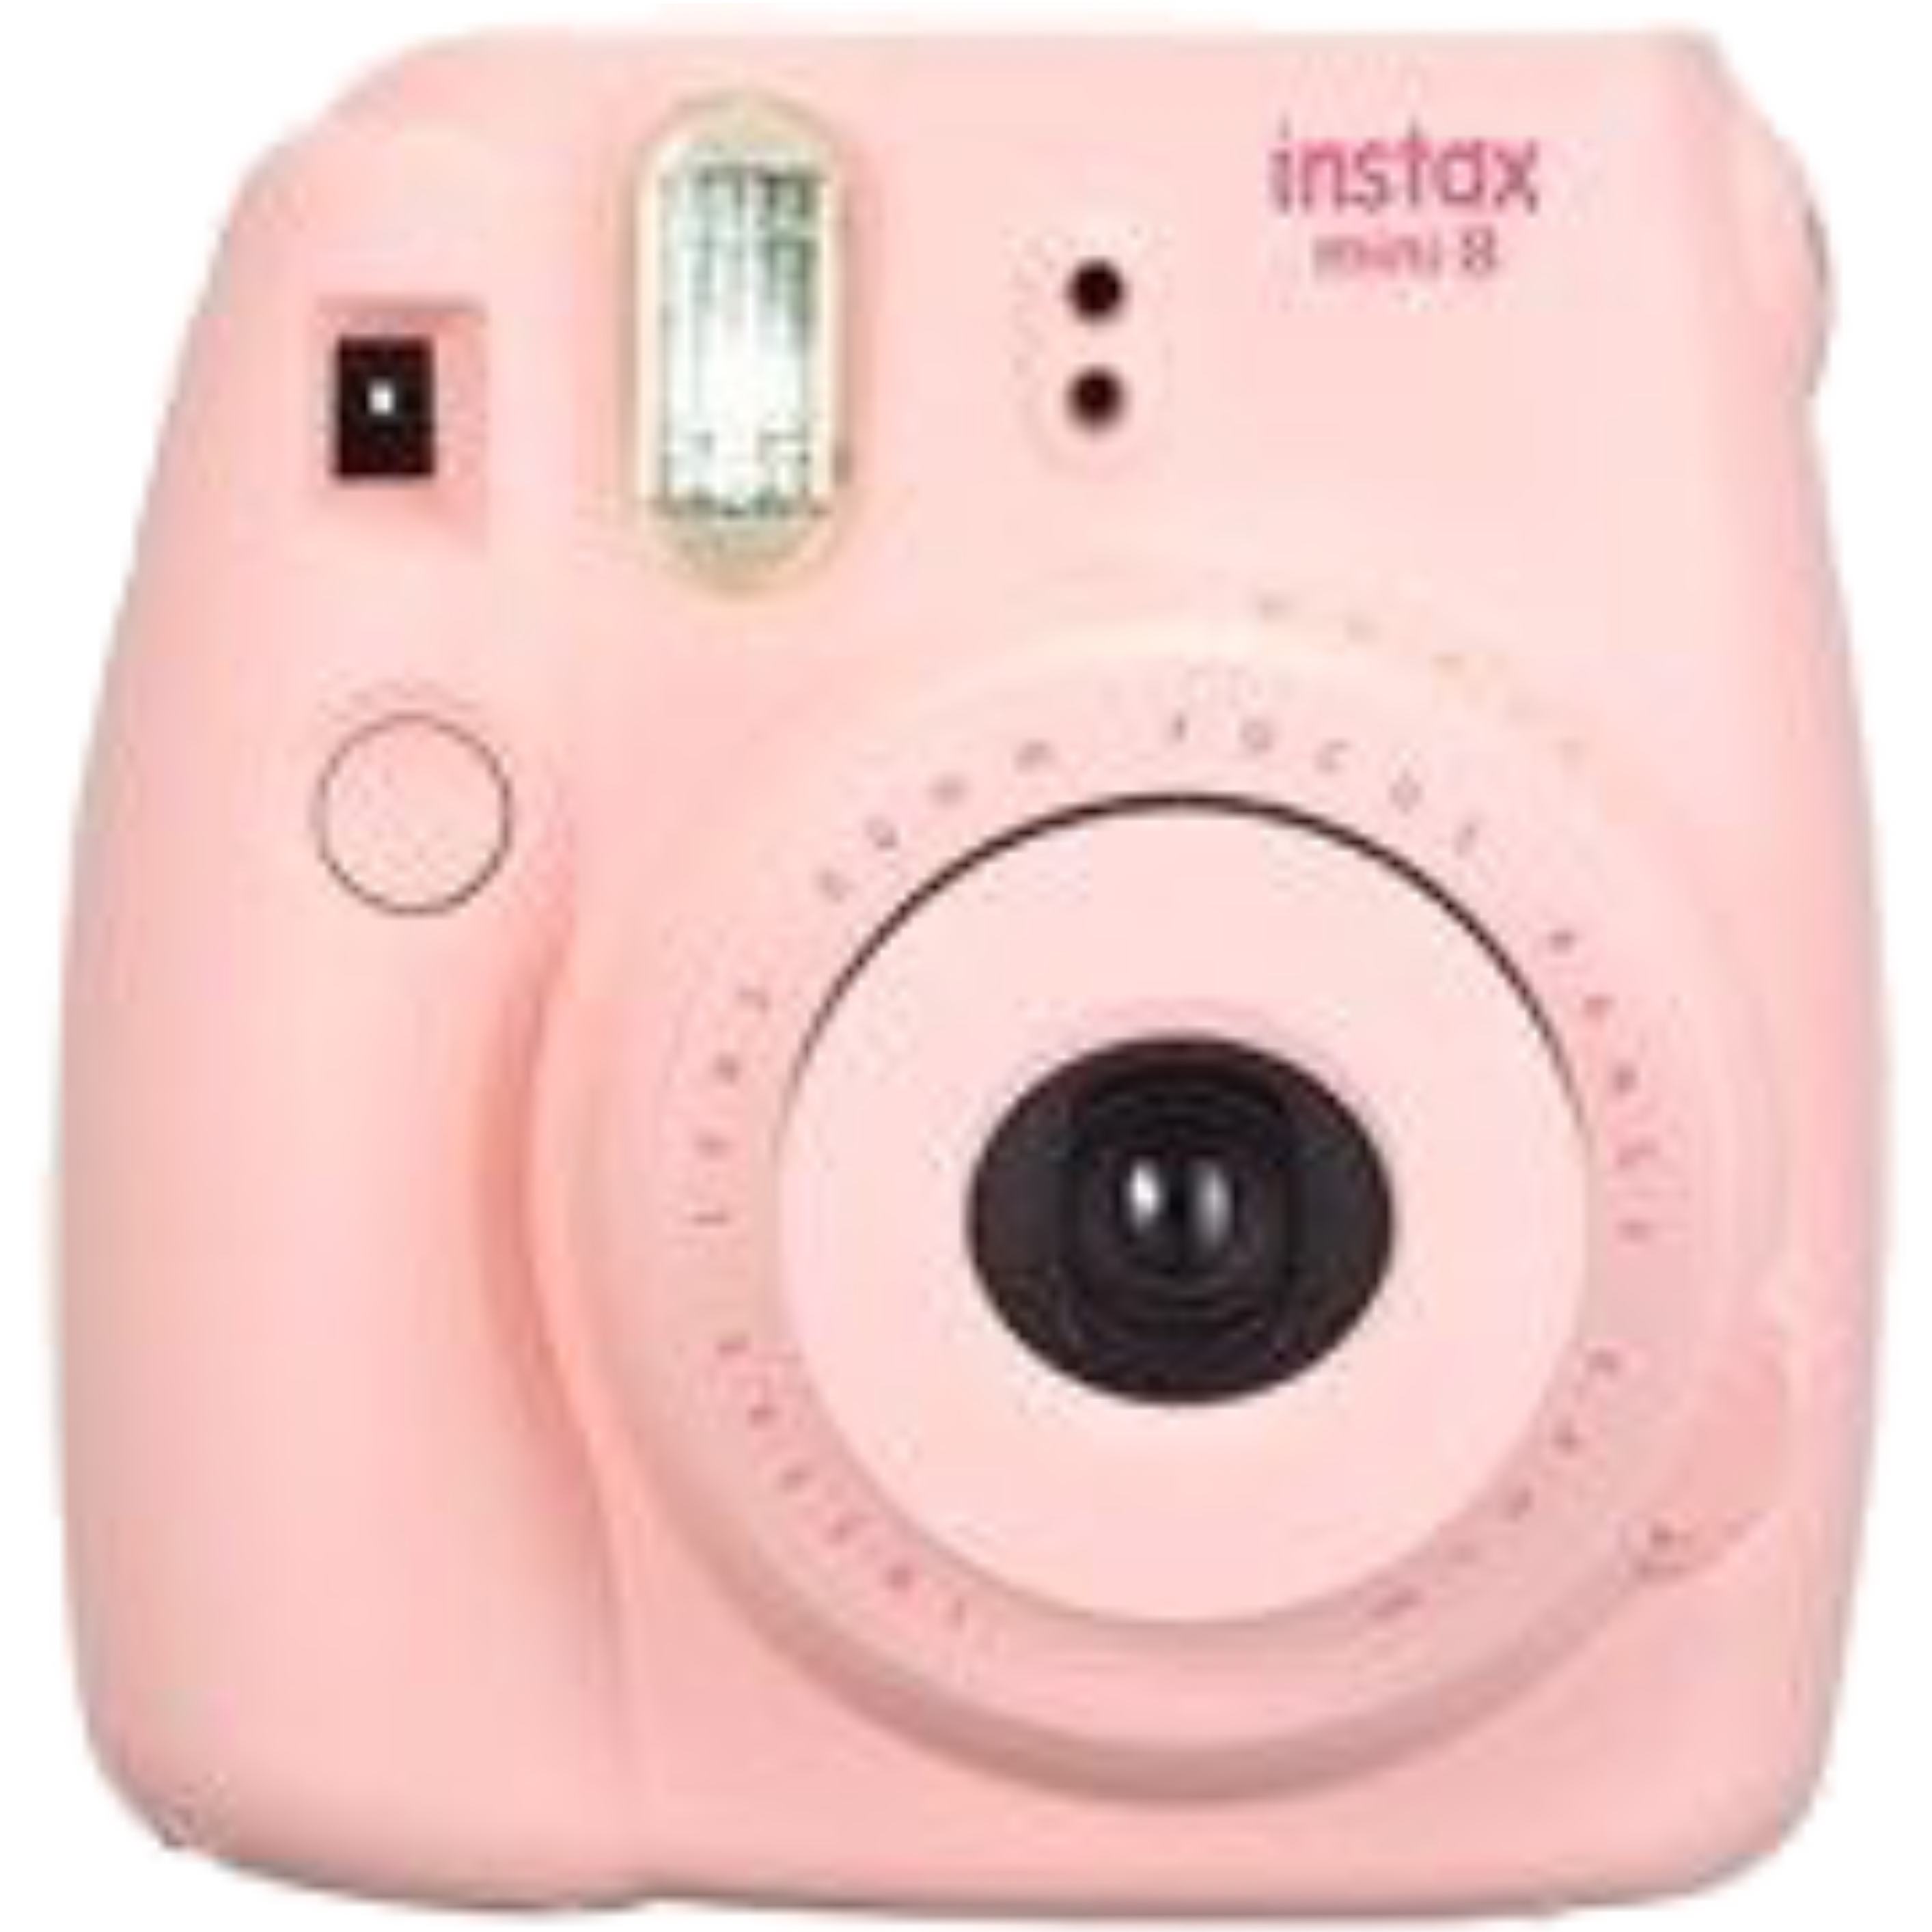 Polaroid clipart instant camera. Instax soft pink aesthetic